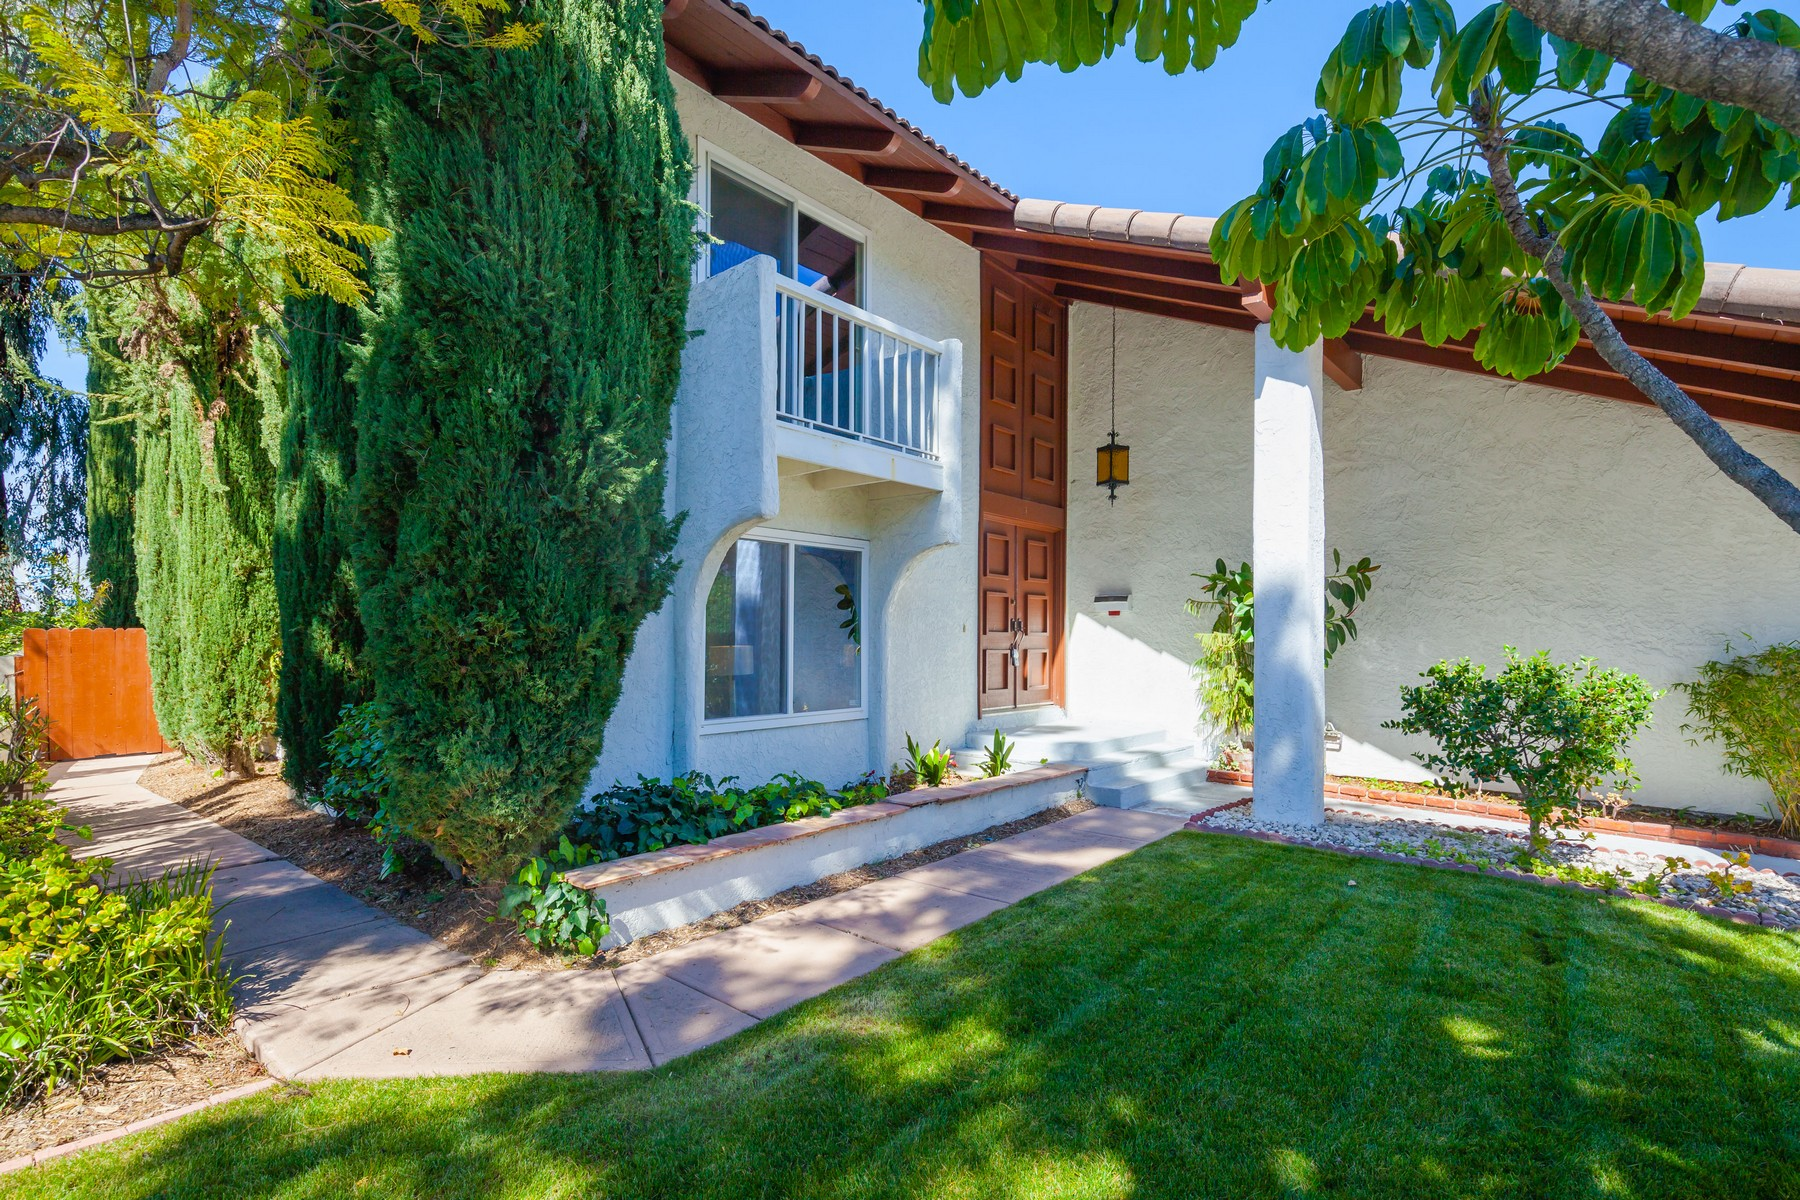 Single Family Home for Sale at 6006 Camino Largo San Diego, California, 92120 United States